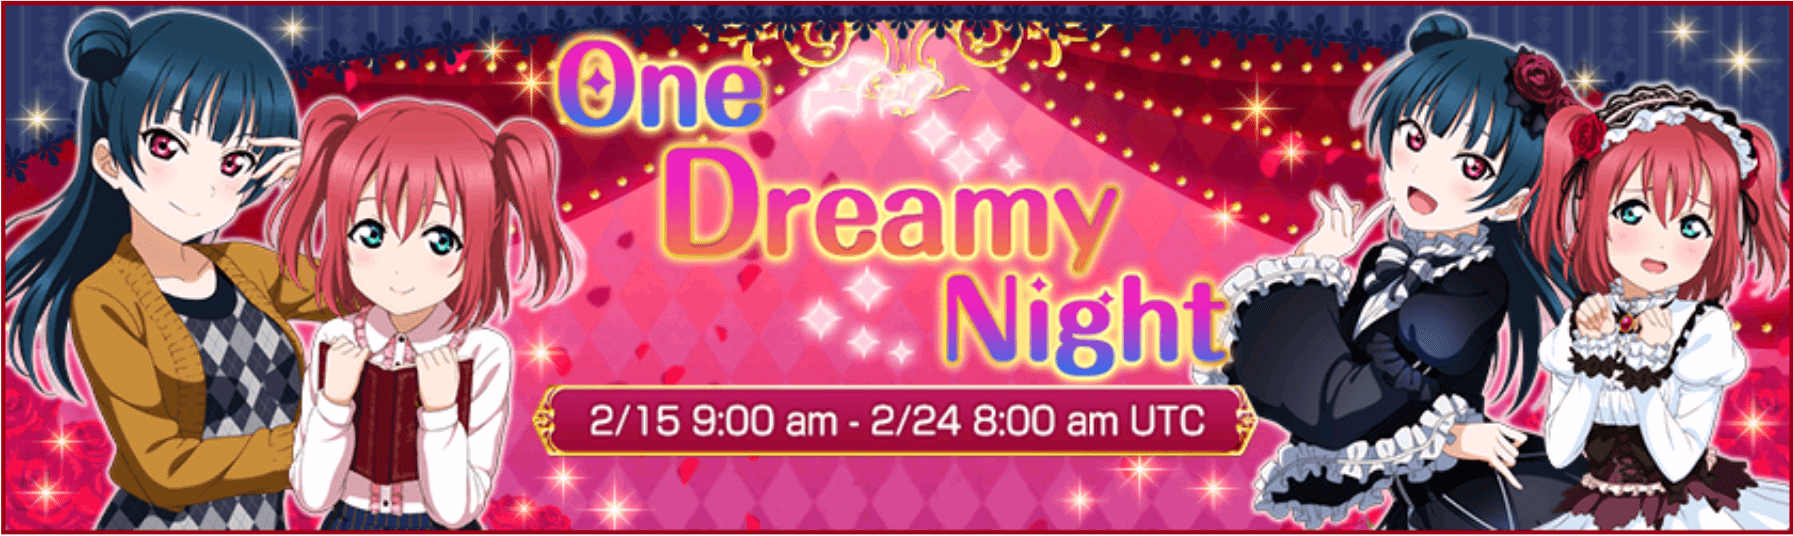 One Dreamy Night